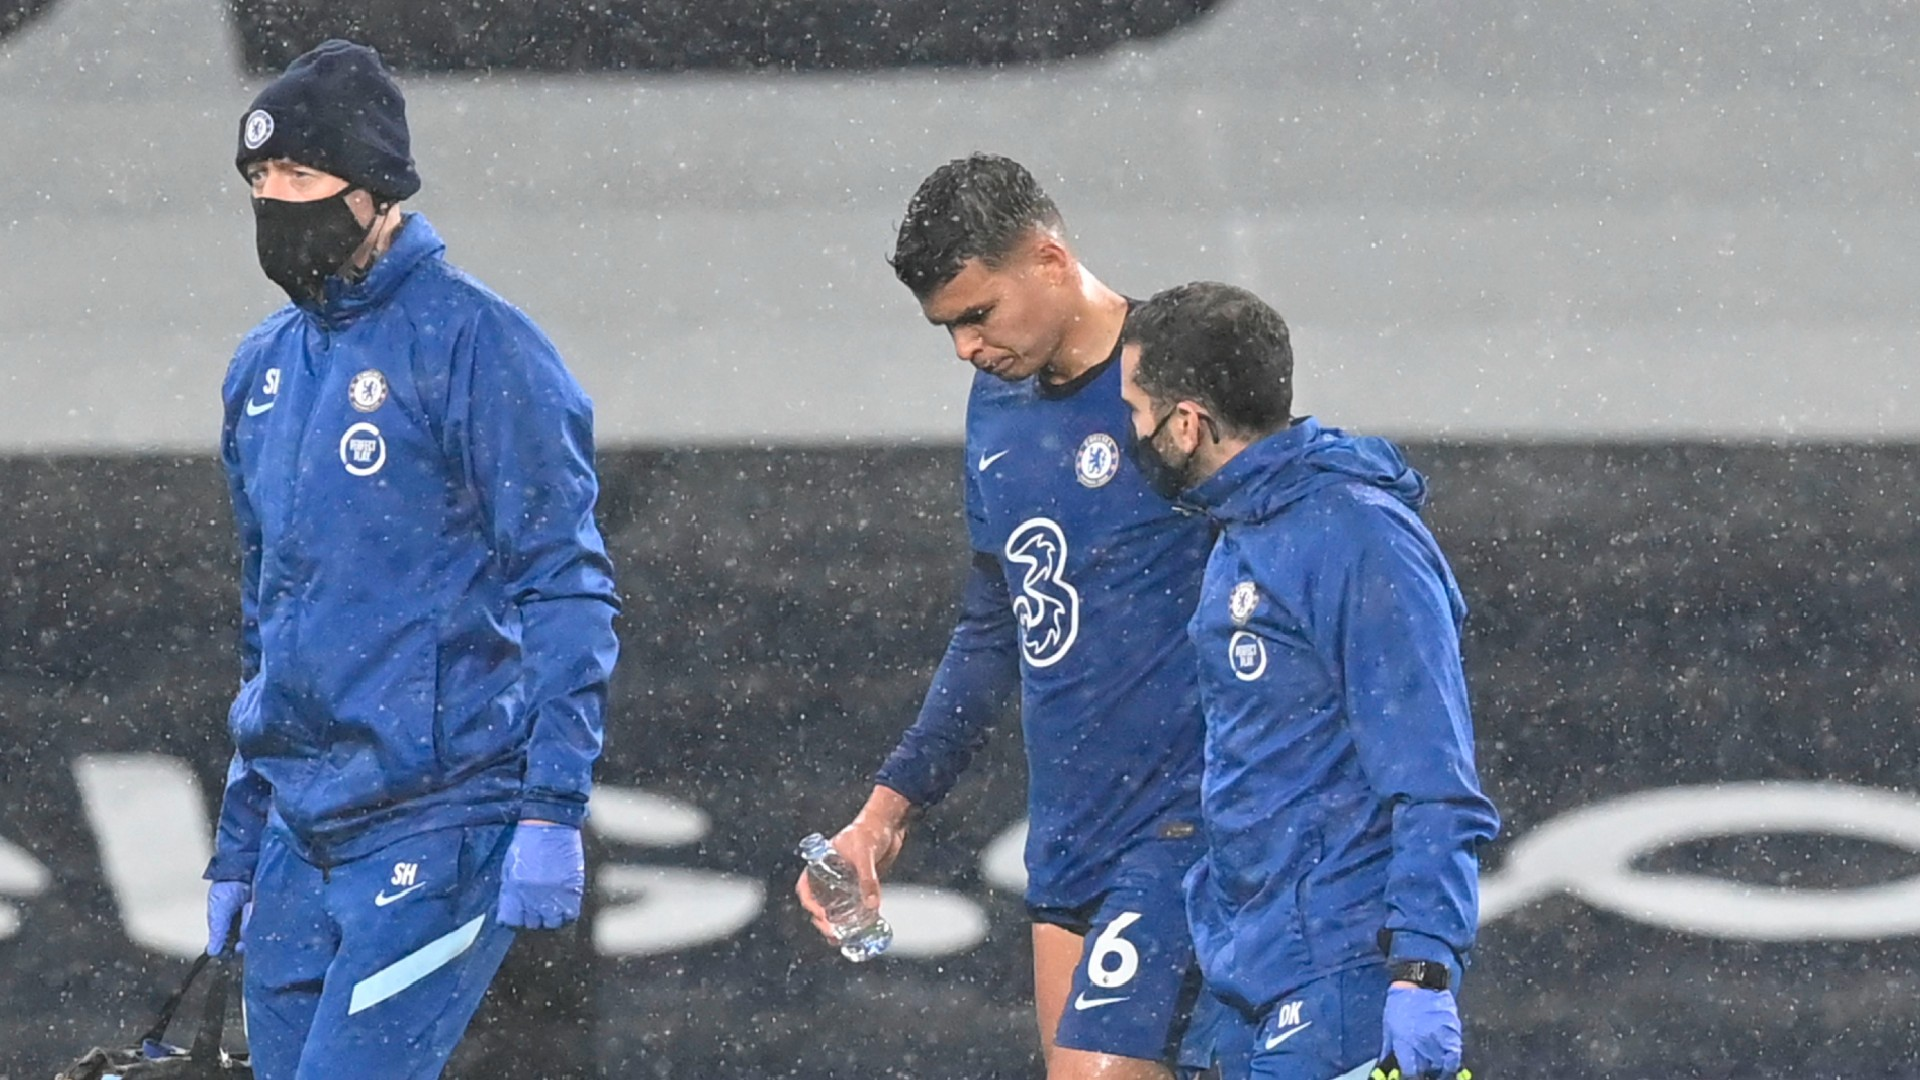 Thiago Silva limps off with injury in first half of Chelsea's clash with Tottenham